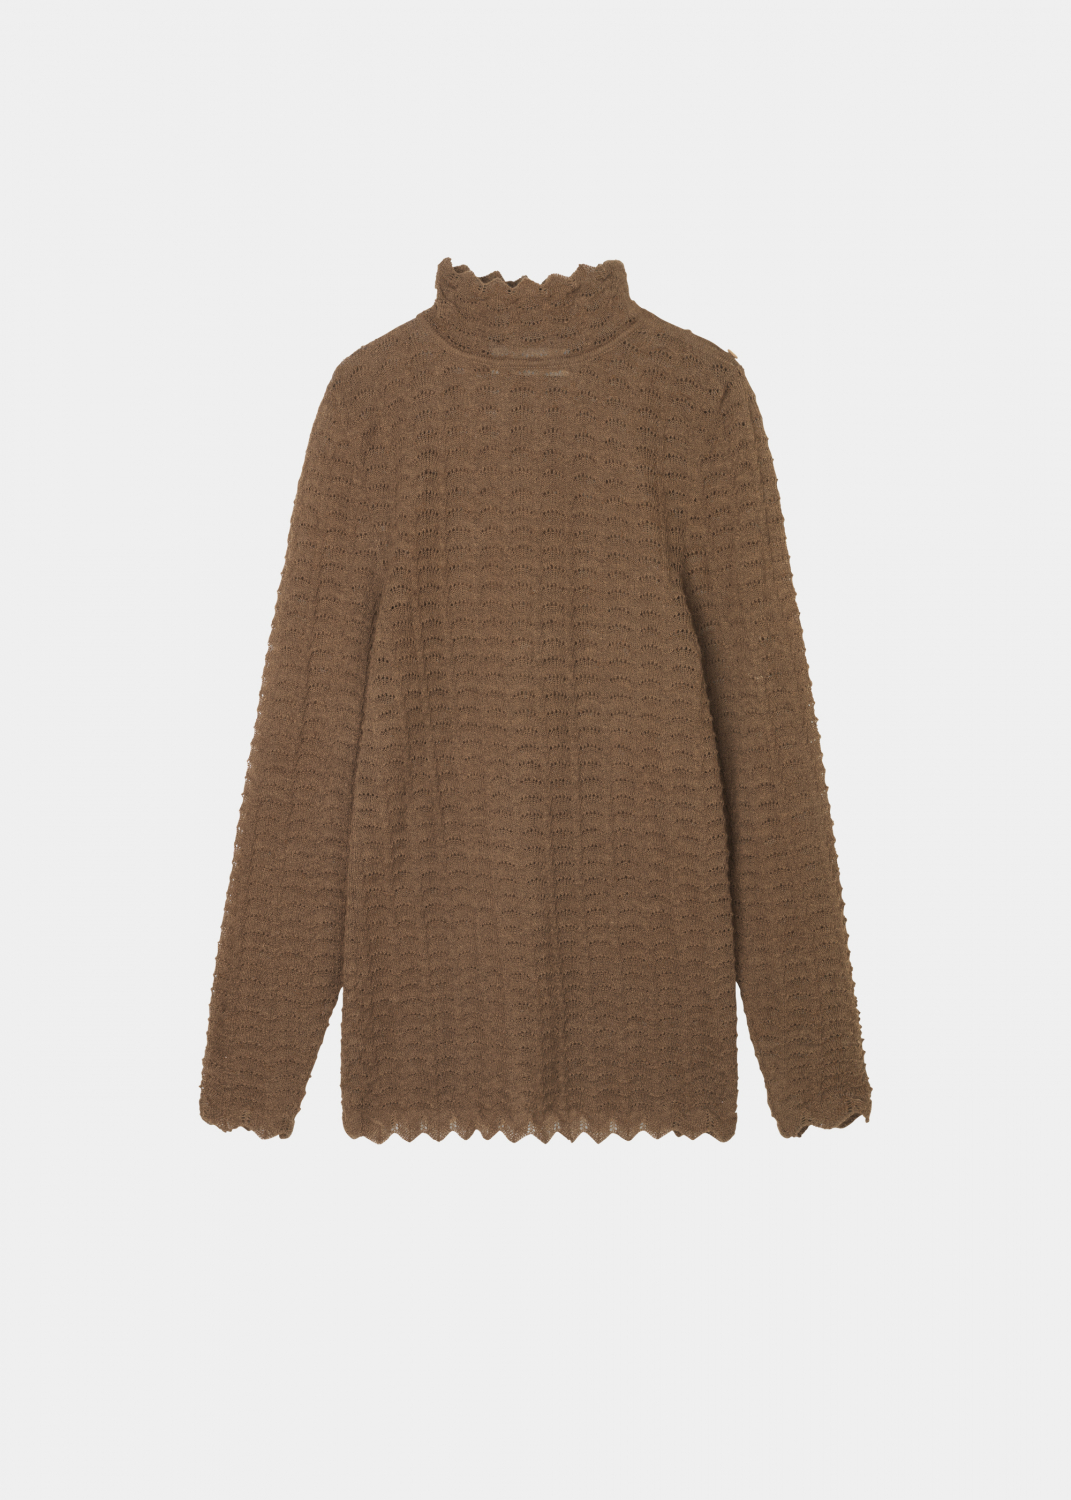 Knits - Almirante Knit Blouse